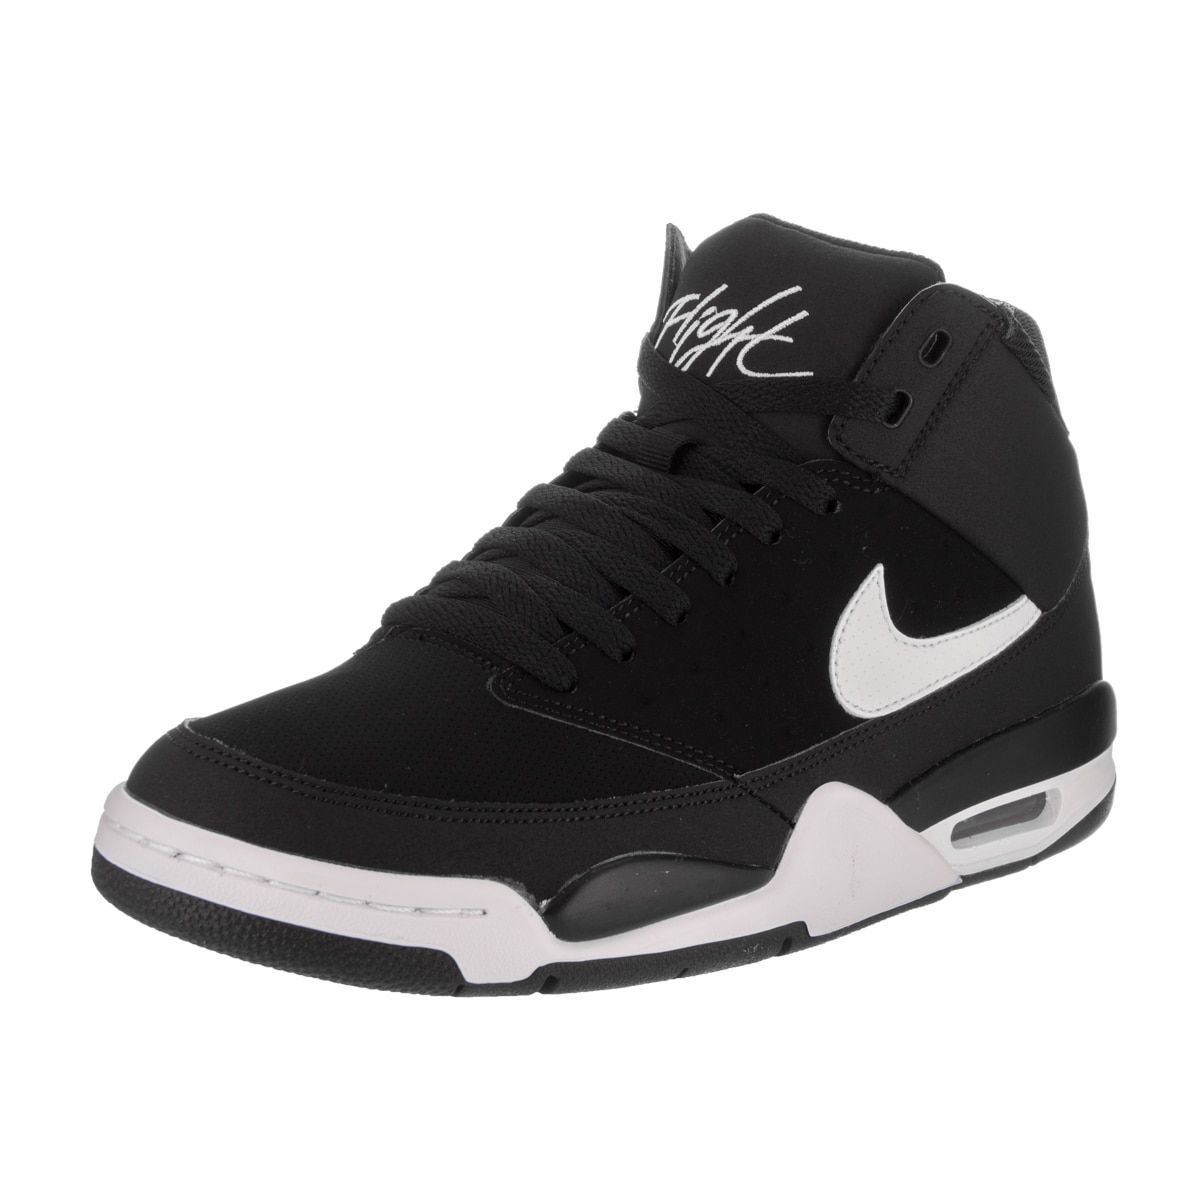 567b7eec5705 Nike Men s Air Flight Classic Black and White Basketball Shoes ...